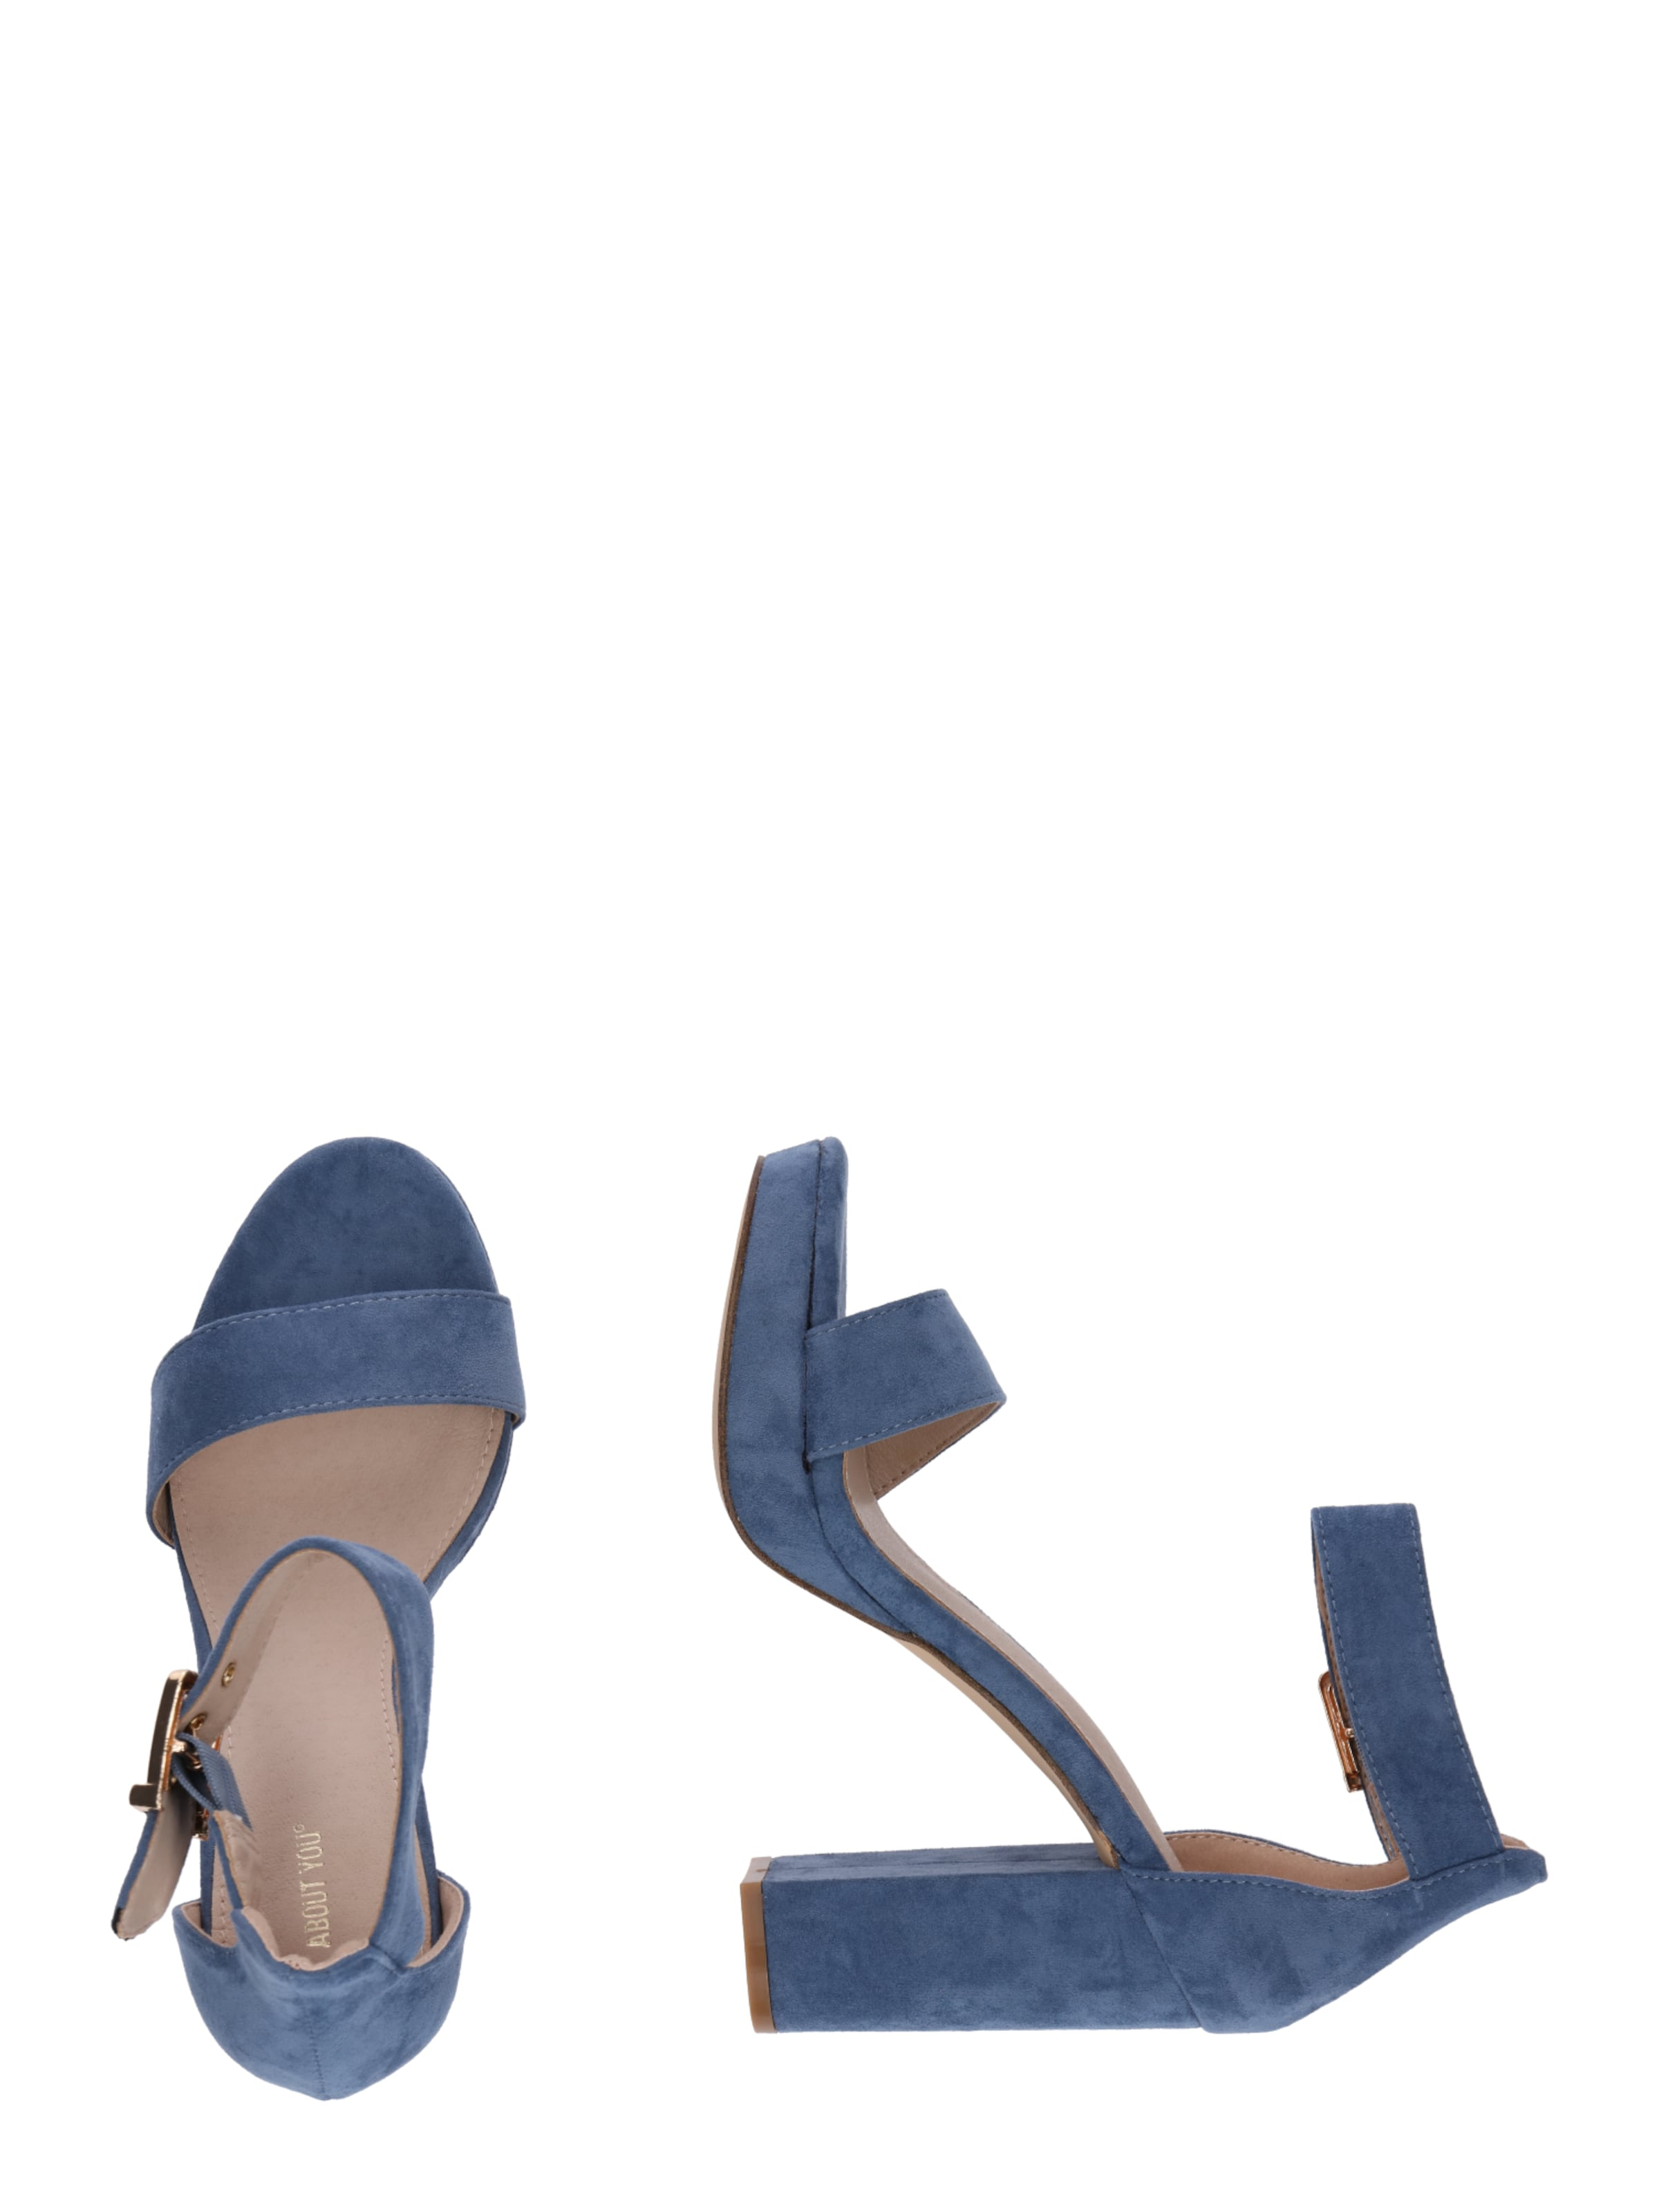 High Shoe' About 'lucy You Heel In Blau OiPZkXuT